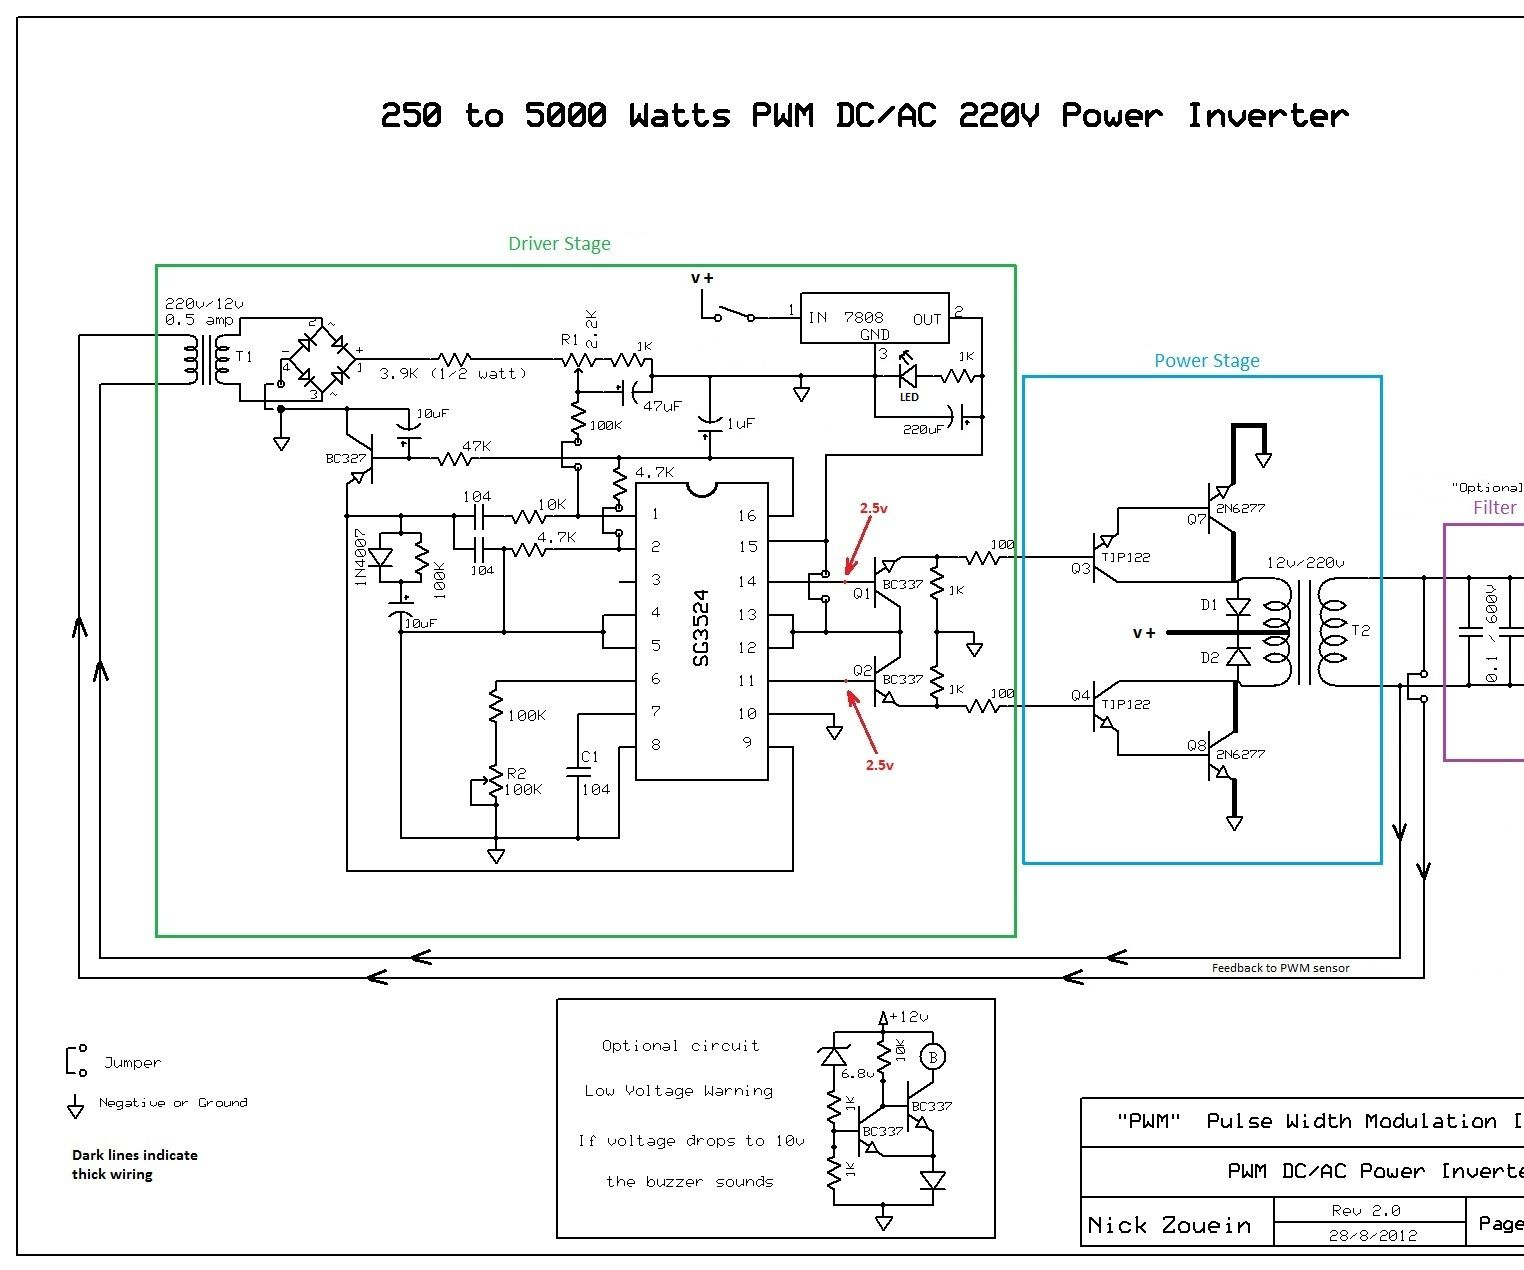 48v to 12v dc to dc converter circuit on pc schematic bridge diagram 250 to 5000 [ 1524 x 1270 Pixel ]